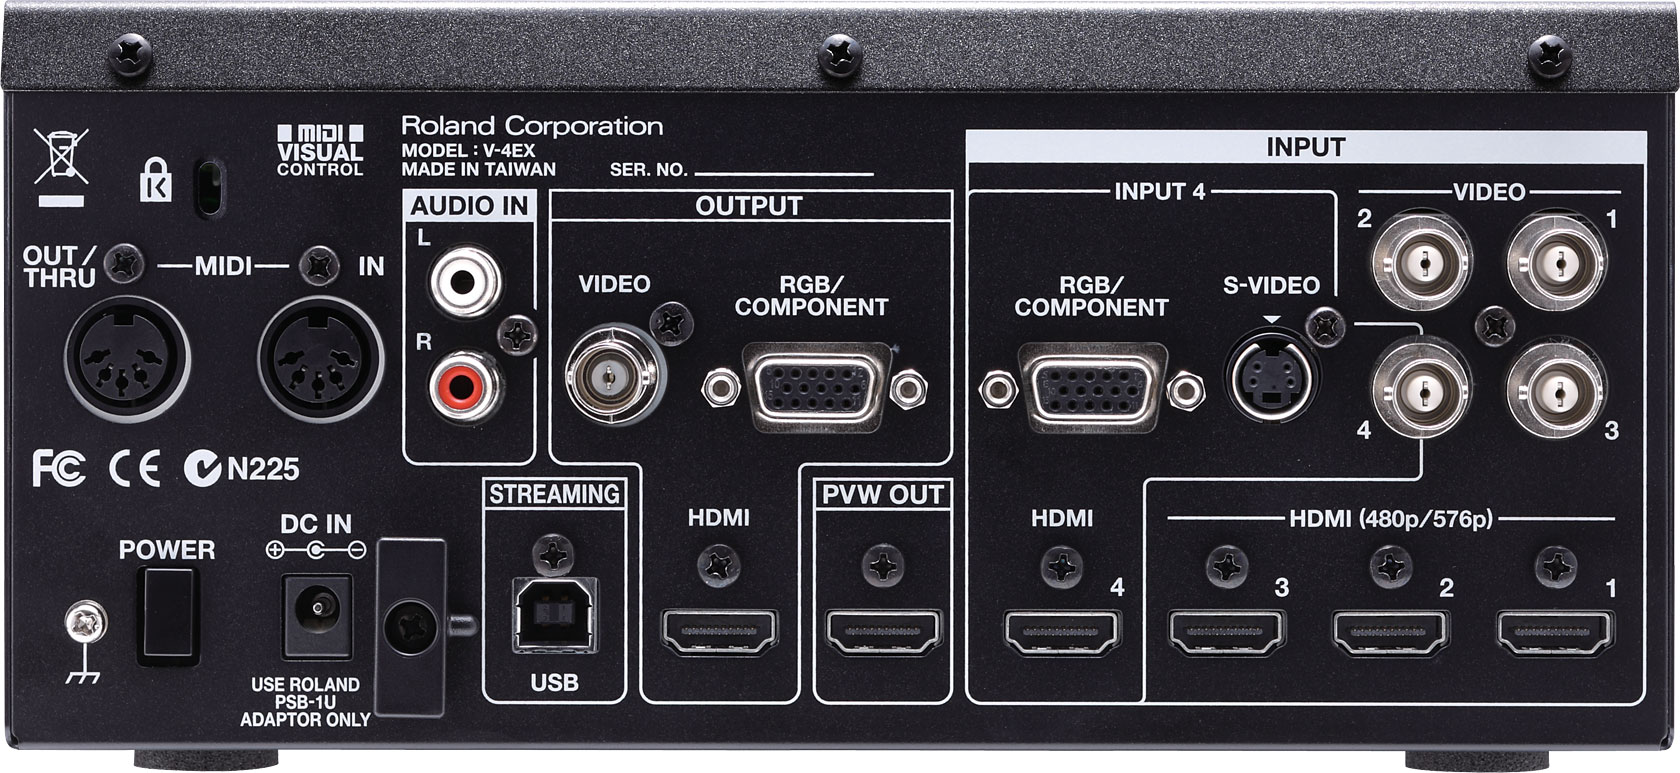 Roland pro a/v stand-alone articles v-1hd hd video switcher.